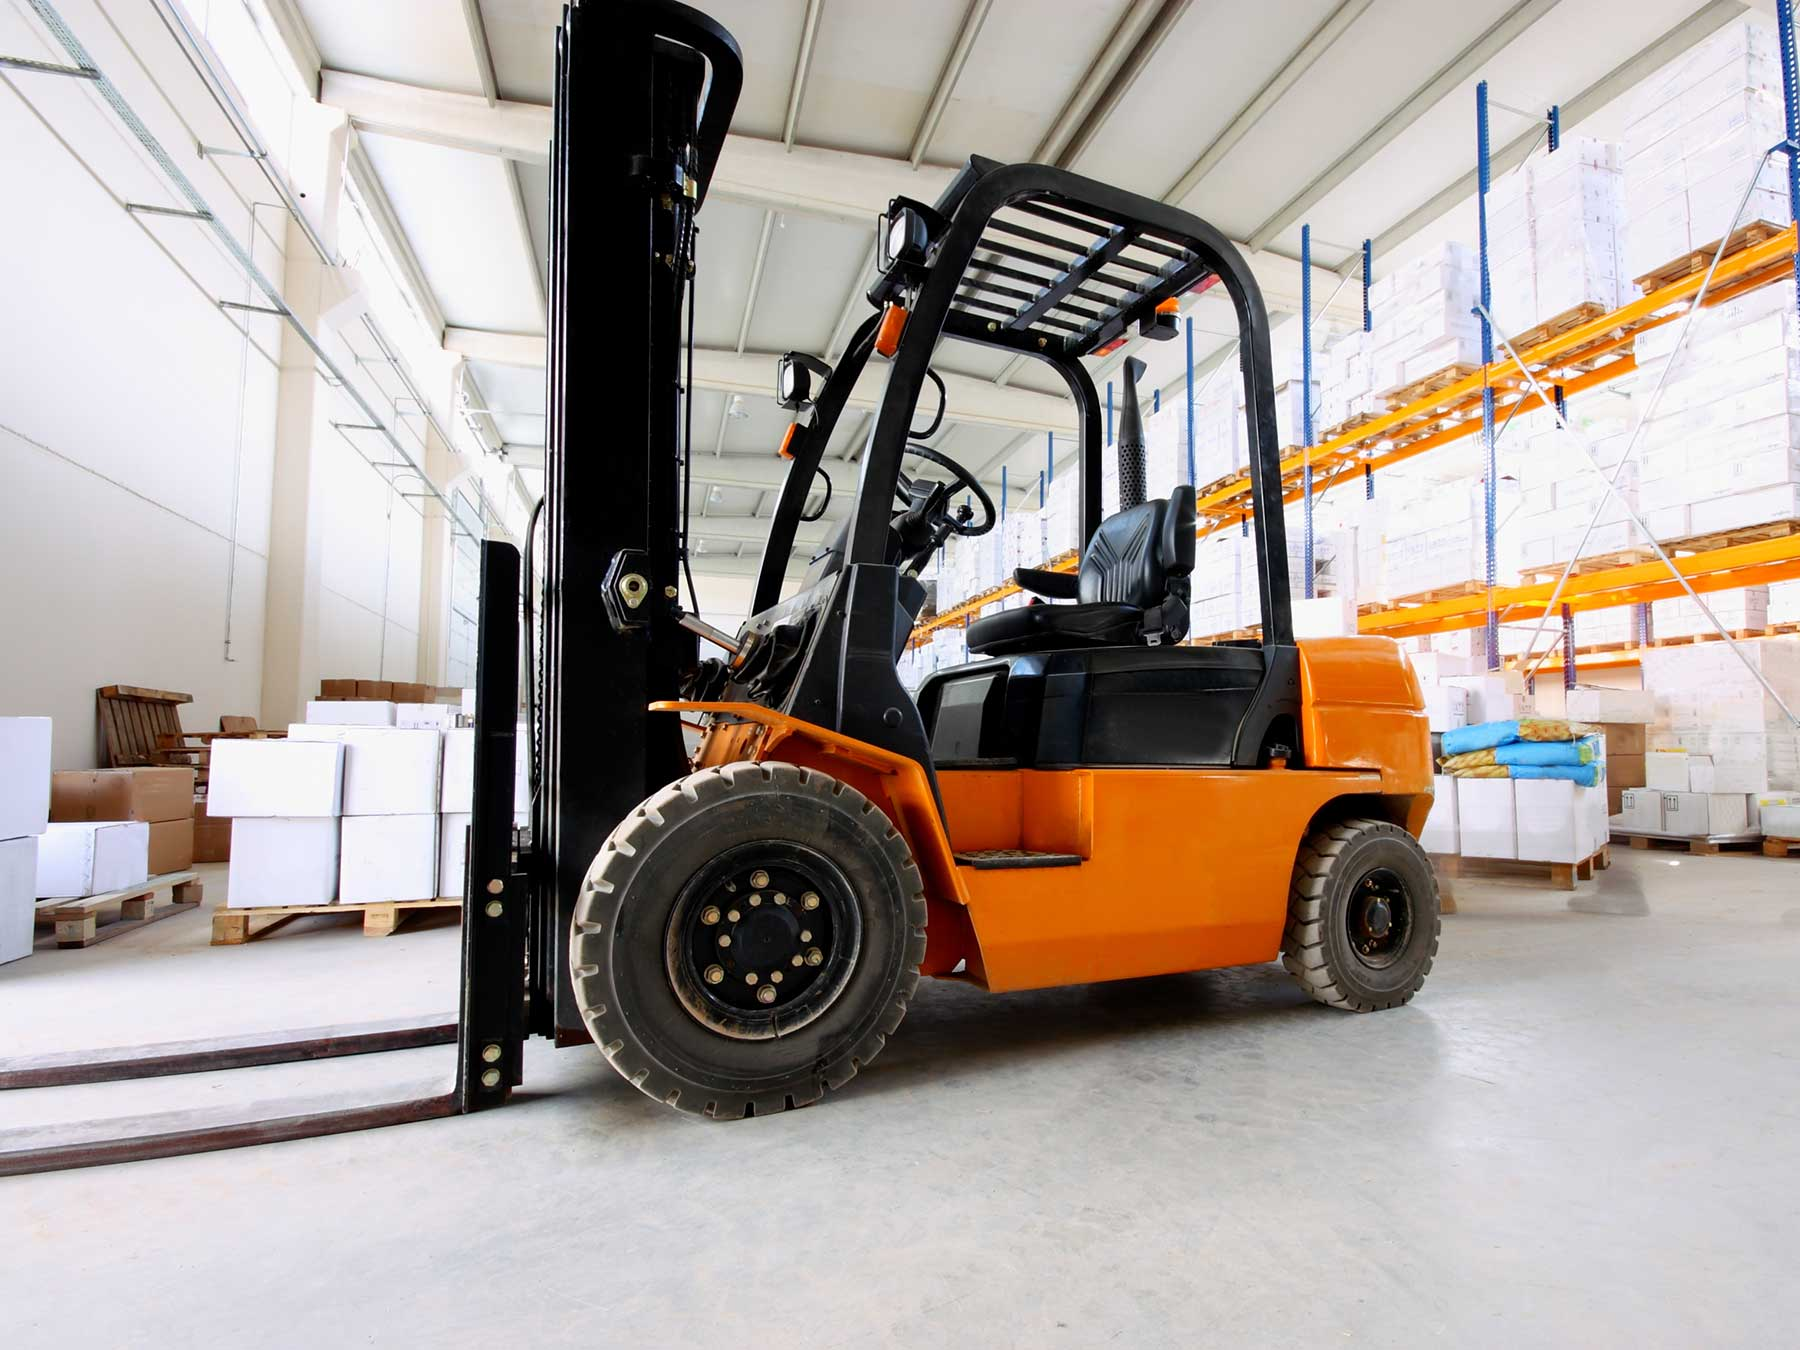 10 Different Forklift Types And Their Uses